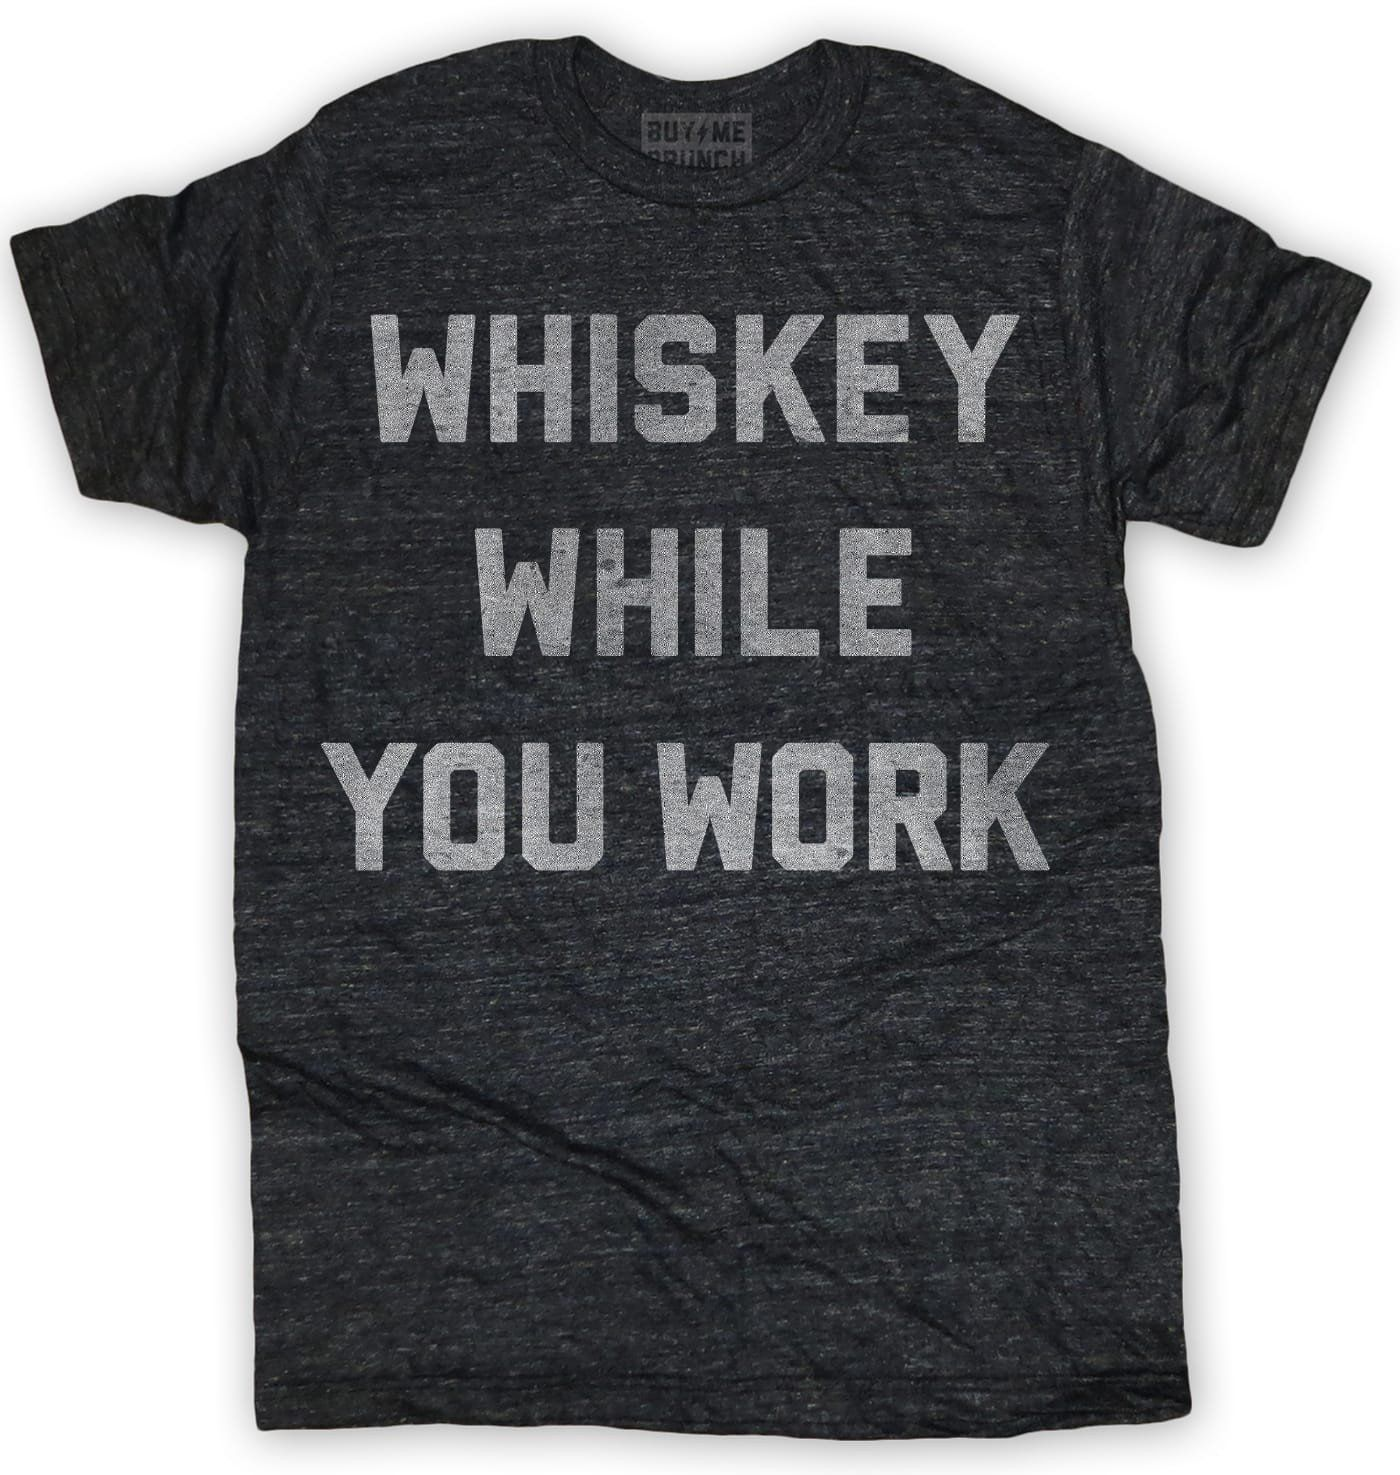 Whiskey While You Work tee. Whether you're a Grumpy Drunk, a Dopey Drunk or just plain Drunky Drunk, you can always whiskey while you work. Ultra soft heather g